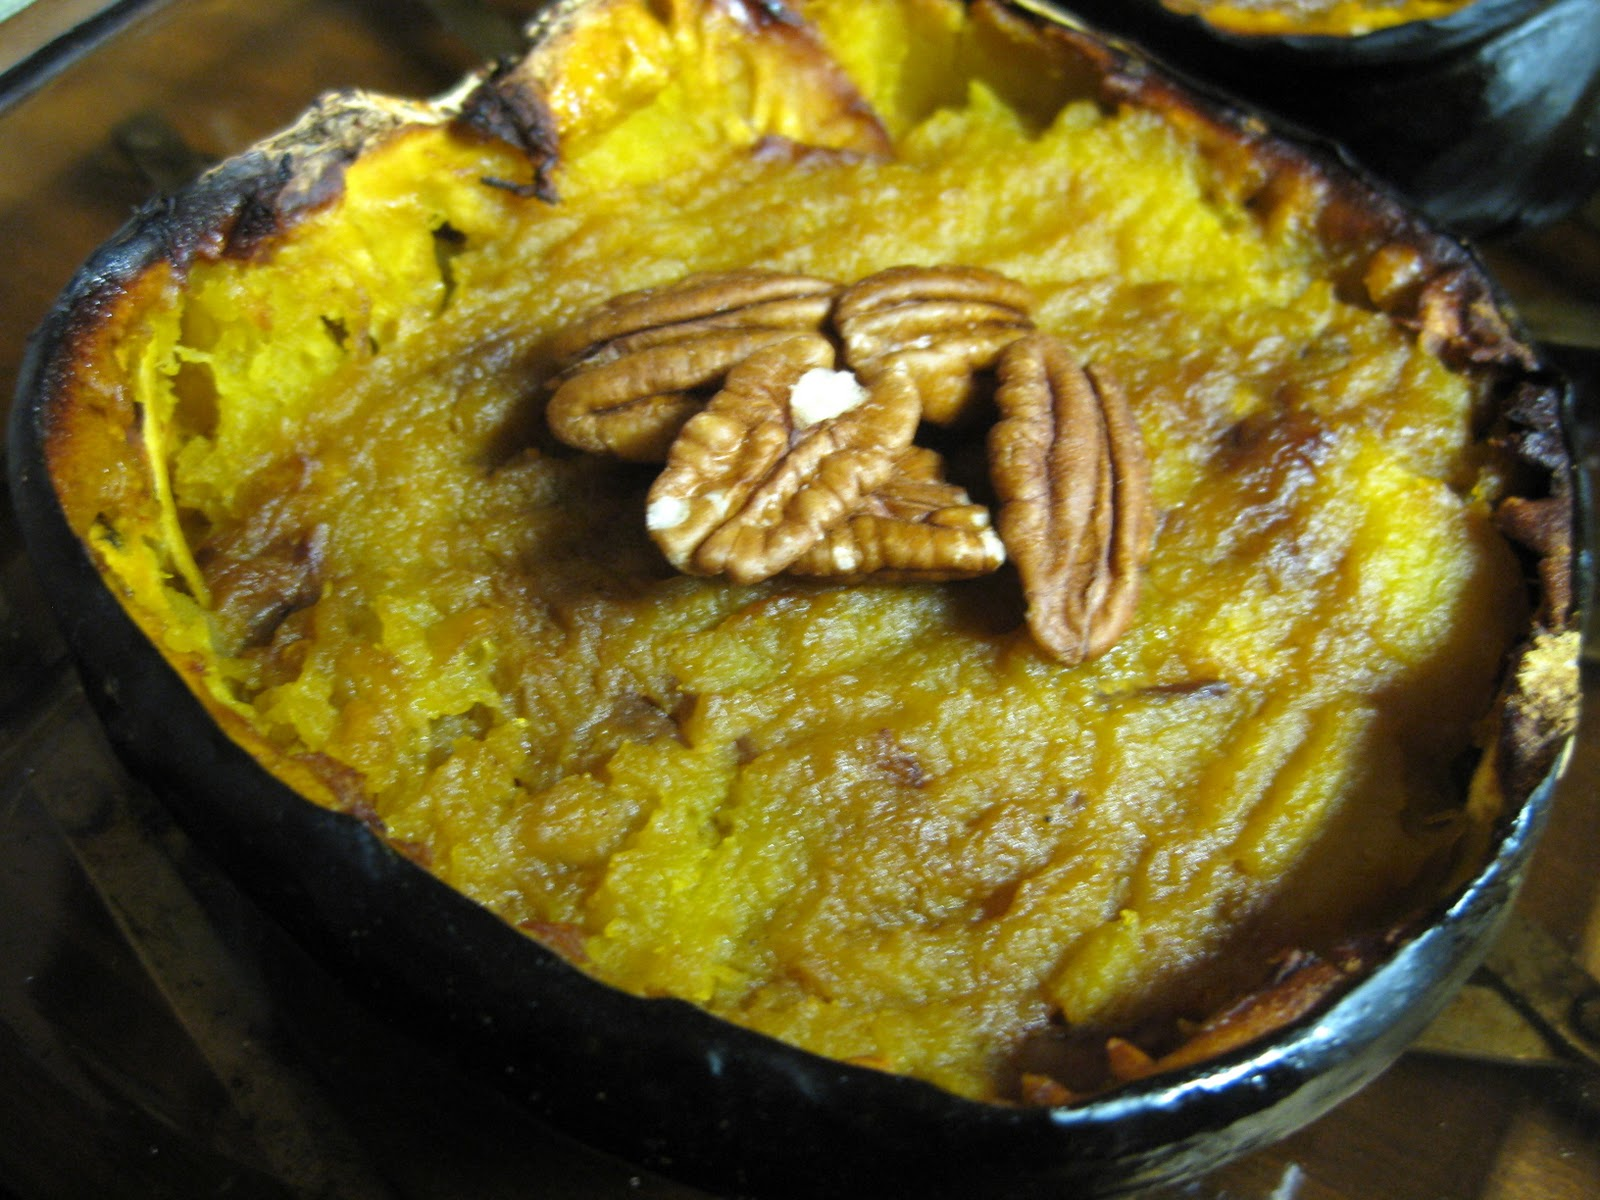 Don't forget to save the seeds to roast alongside the squash! Just ...